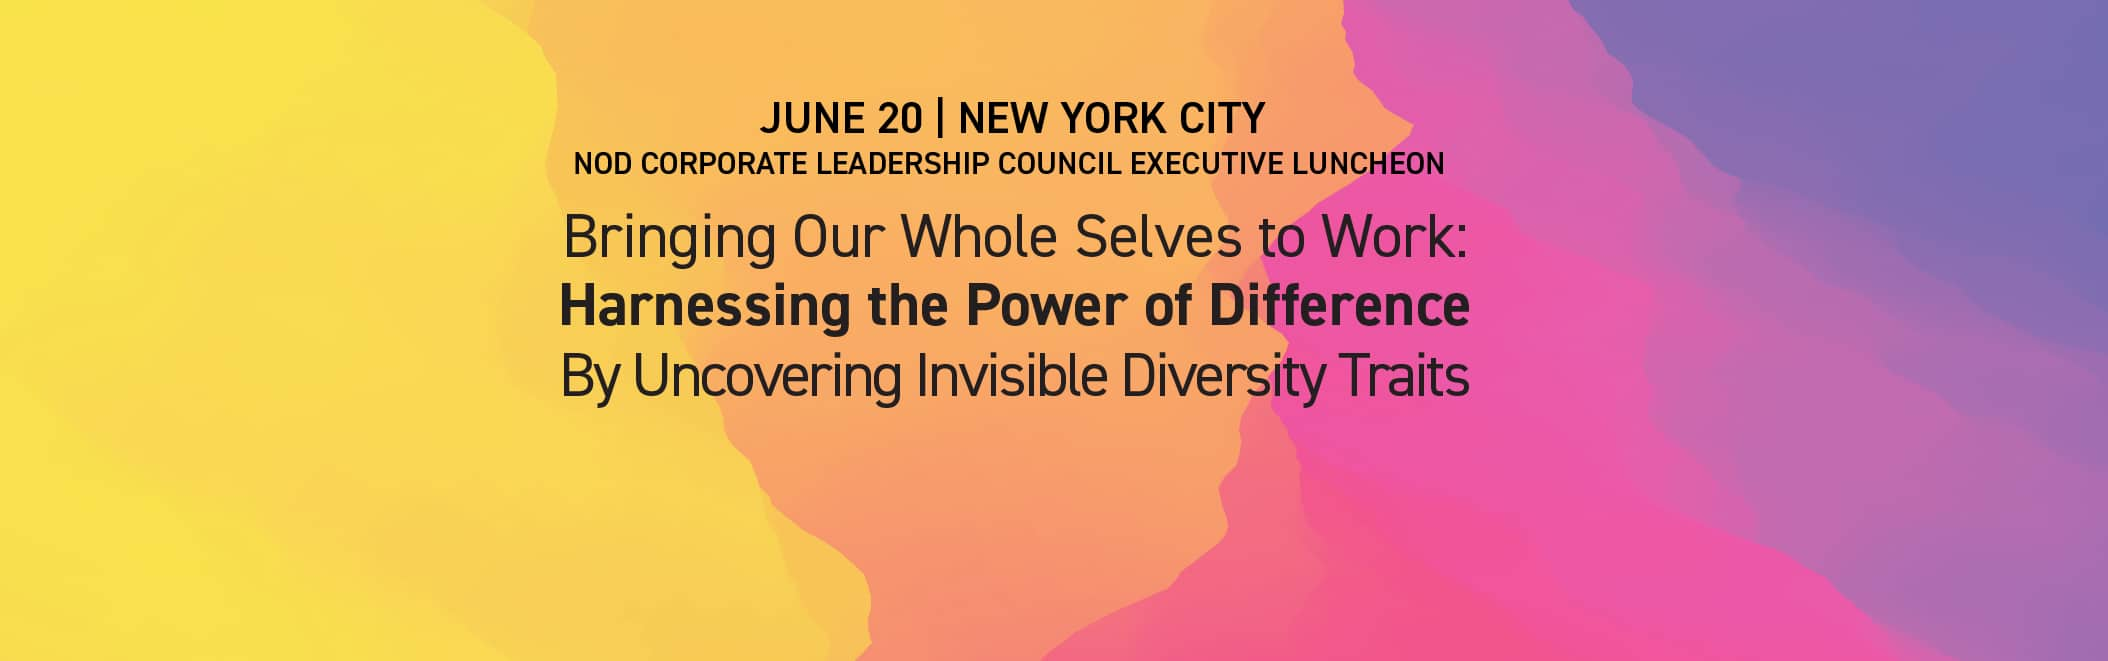 June 20 NYC | Bringing Our Whole Selves to Work: Harnessing the Power of Difference By Uncovering Invisible Diversity Traits